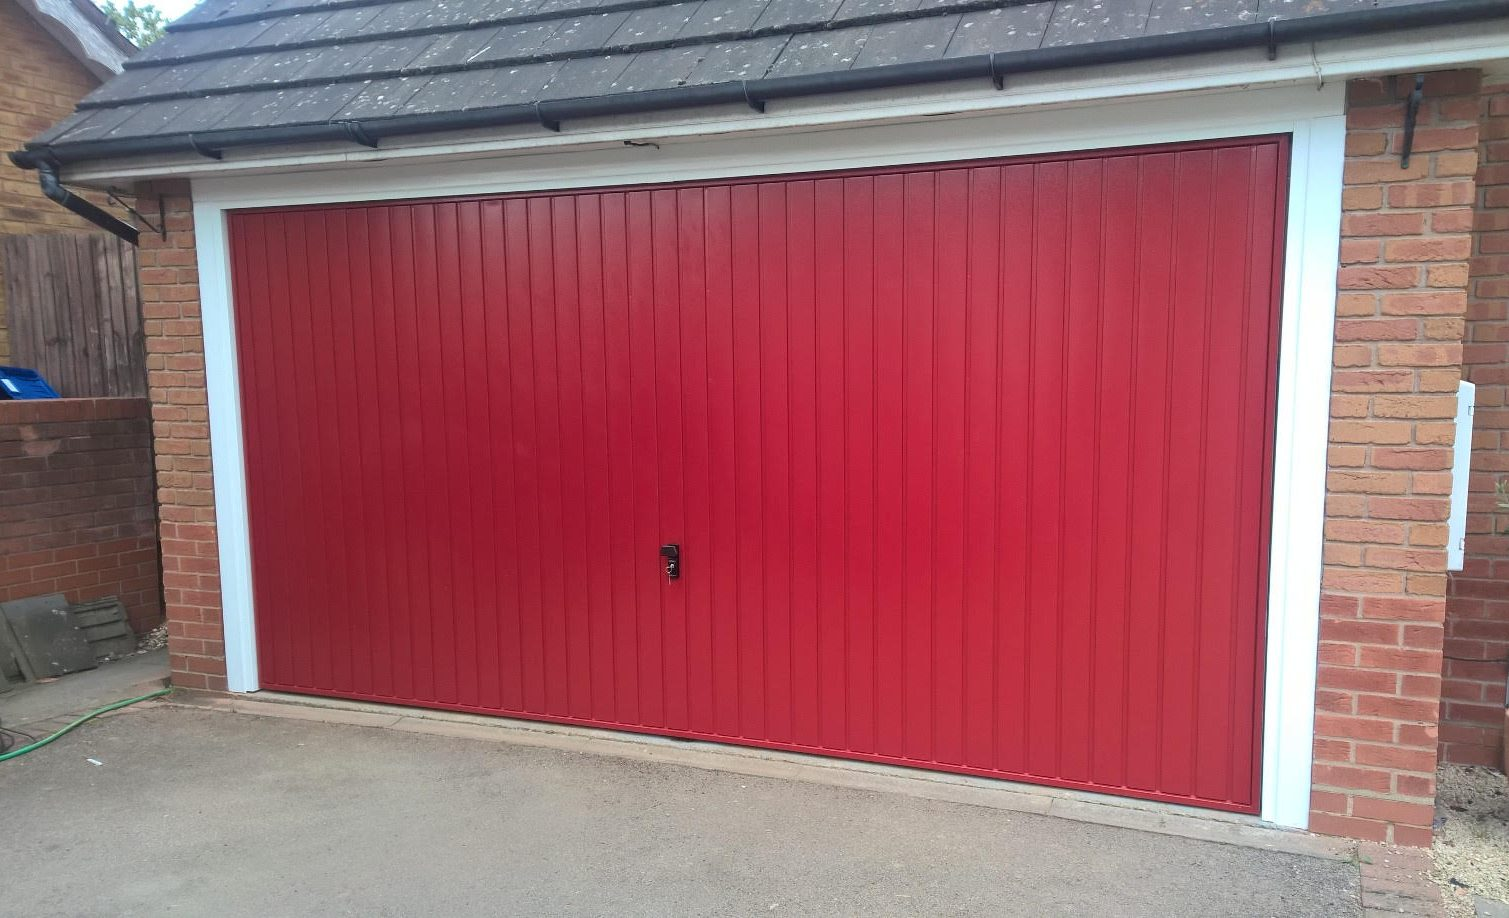 Conversion From Two Single Doors To One Double Garage Door